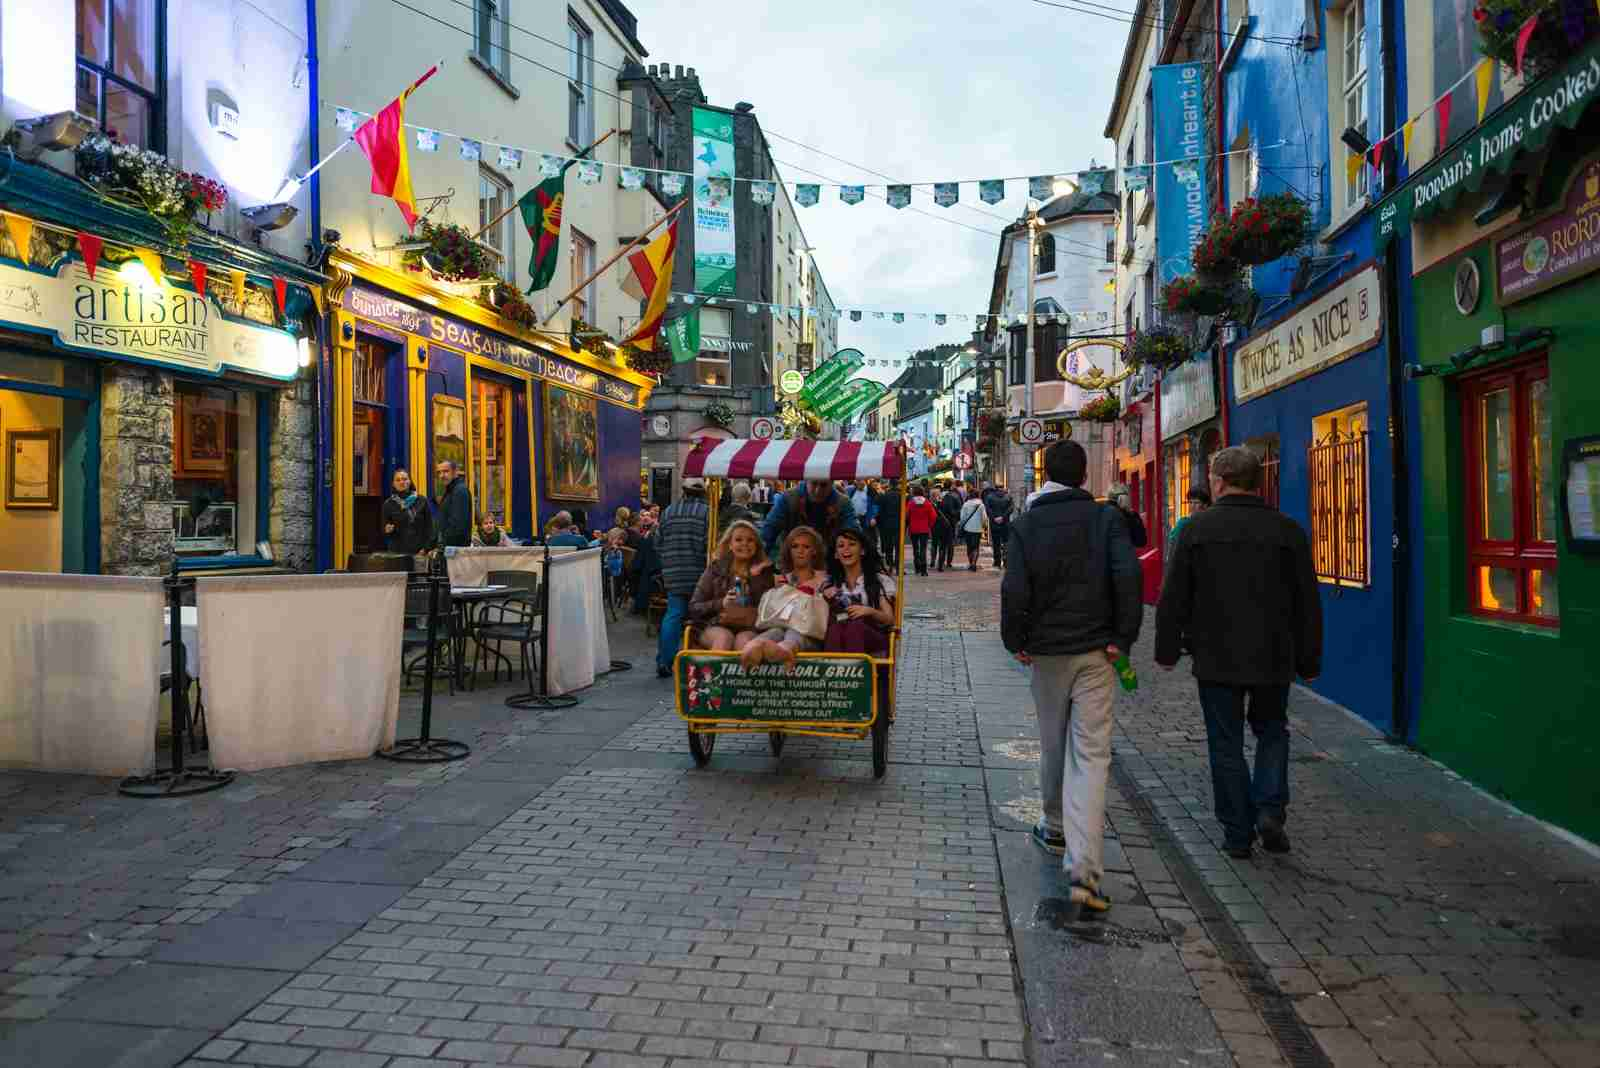 Galway, Ireland. (Photo by Education Images/Universal Images Group/Getty Images)